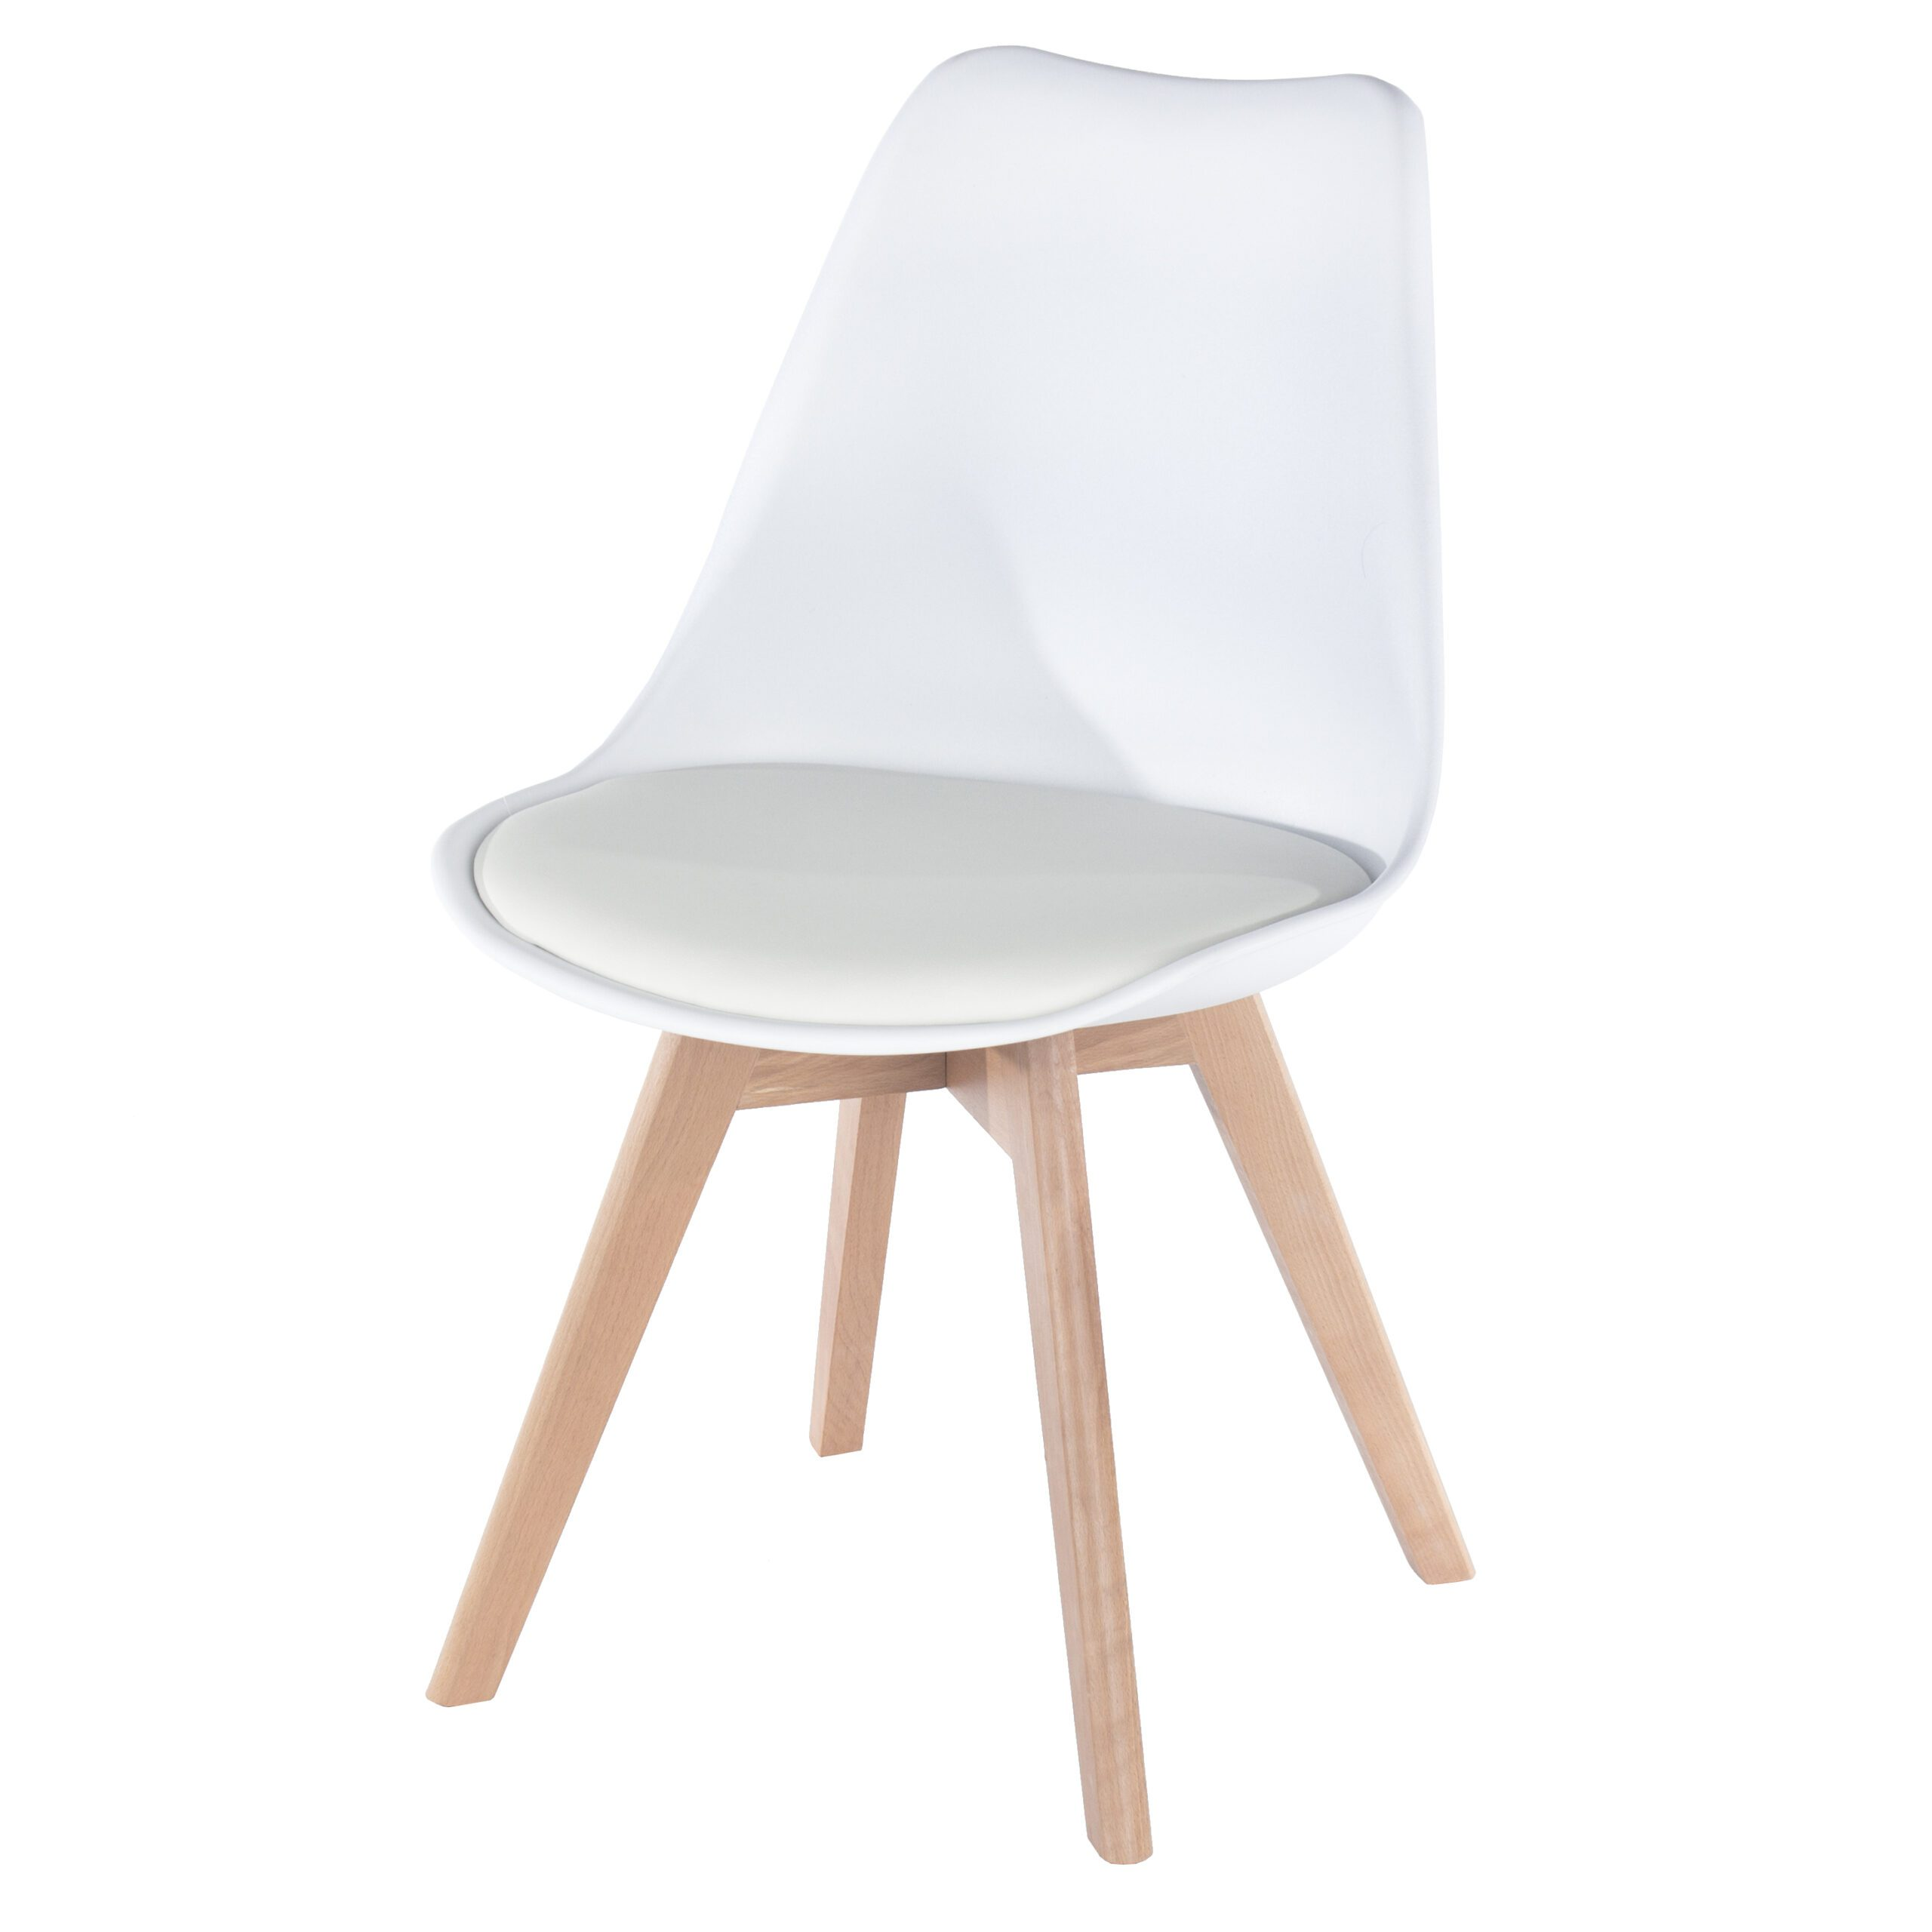 Penny white upholstered plastic chairs with wood legs (pair)